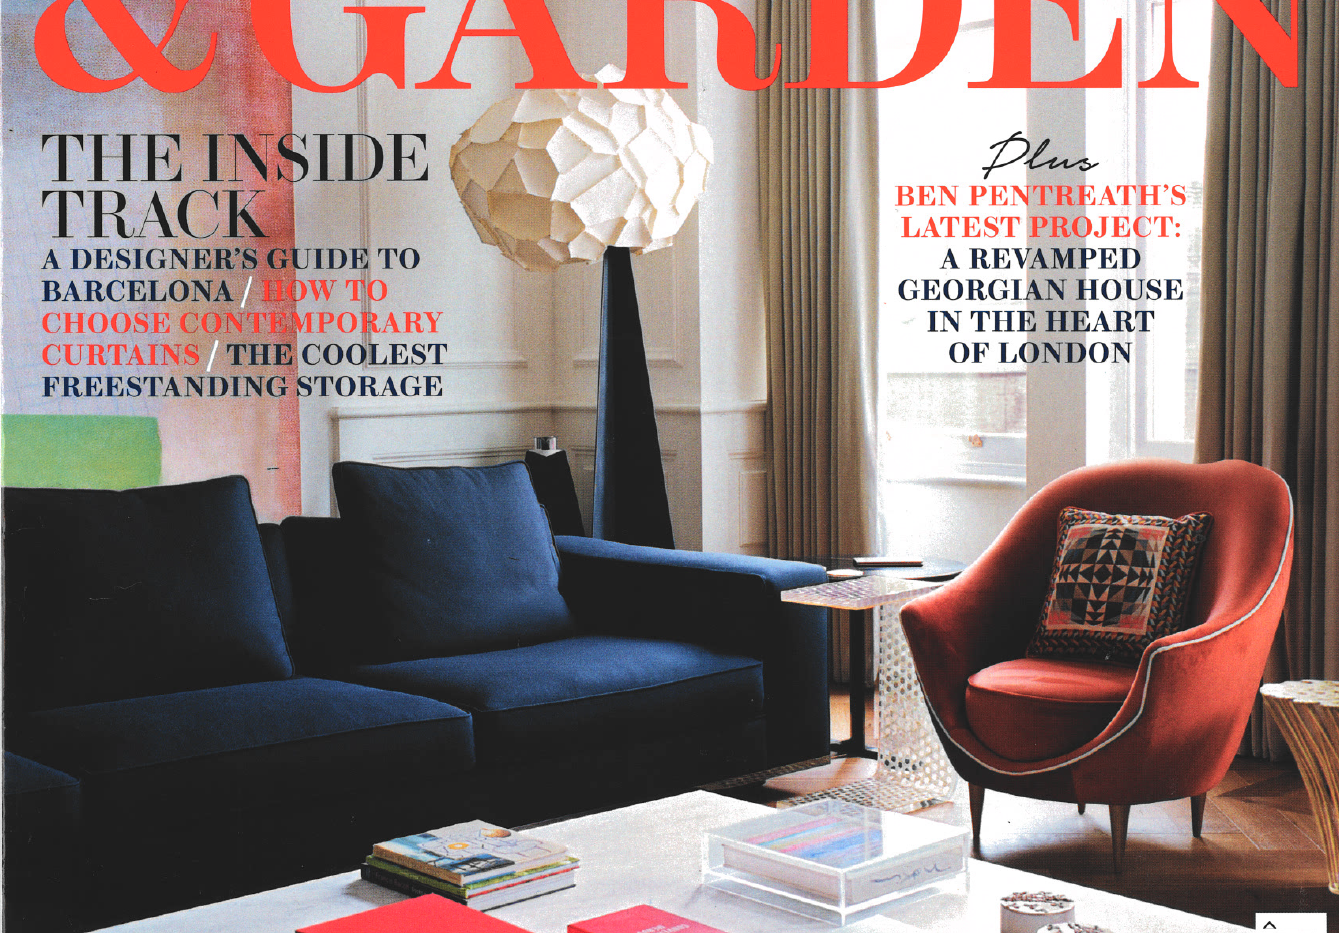 House & Garden - April 2020 cover.png